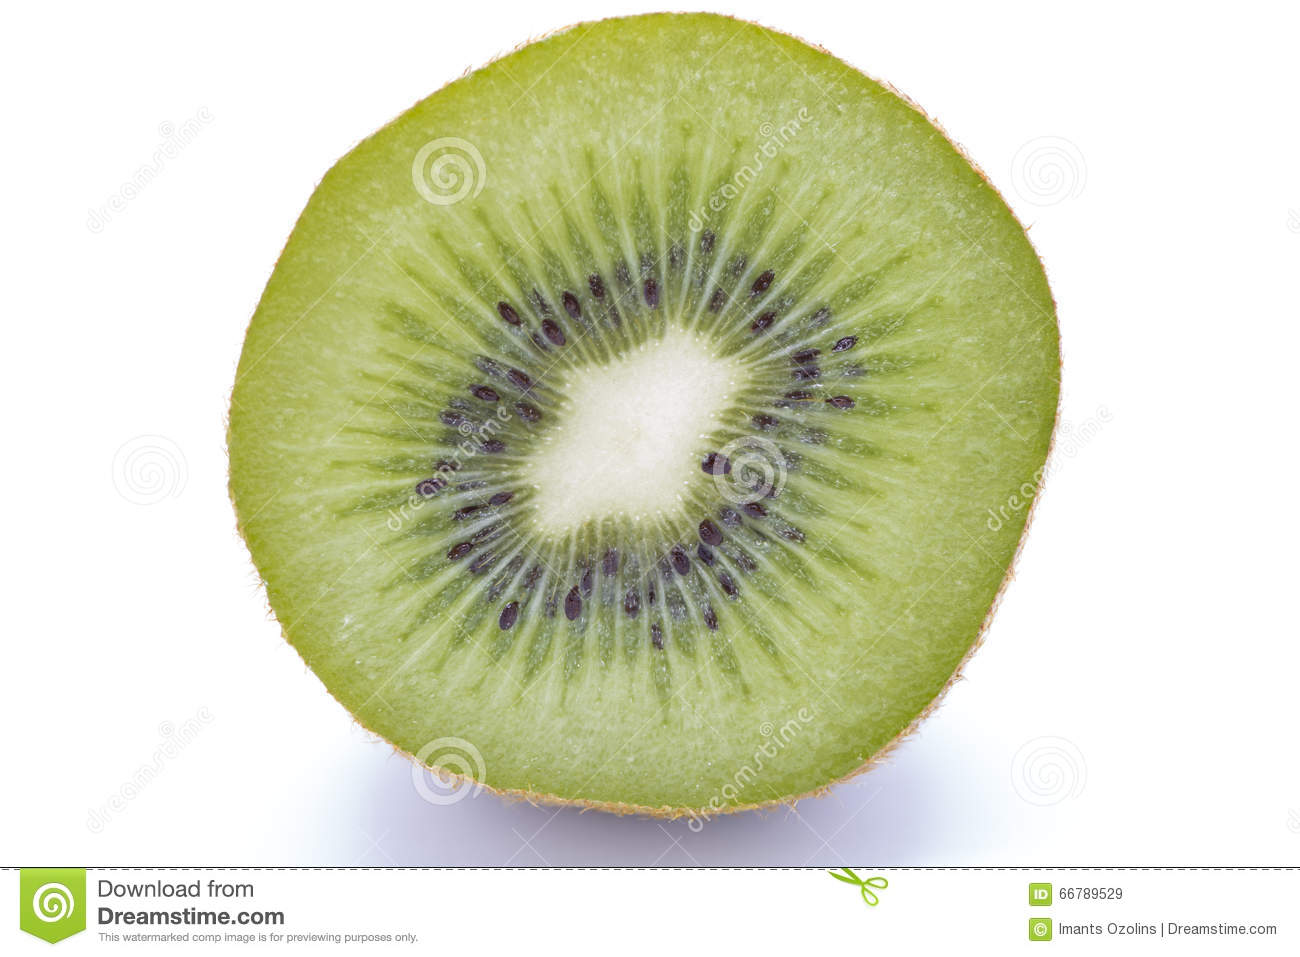 Sliced kiwifruit on white background